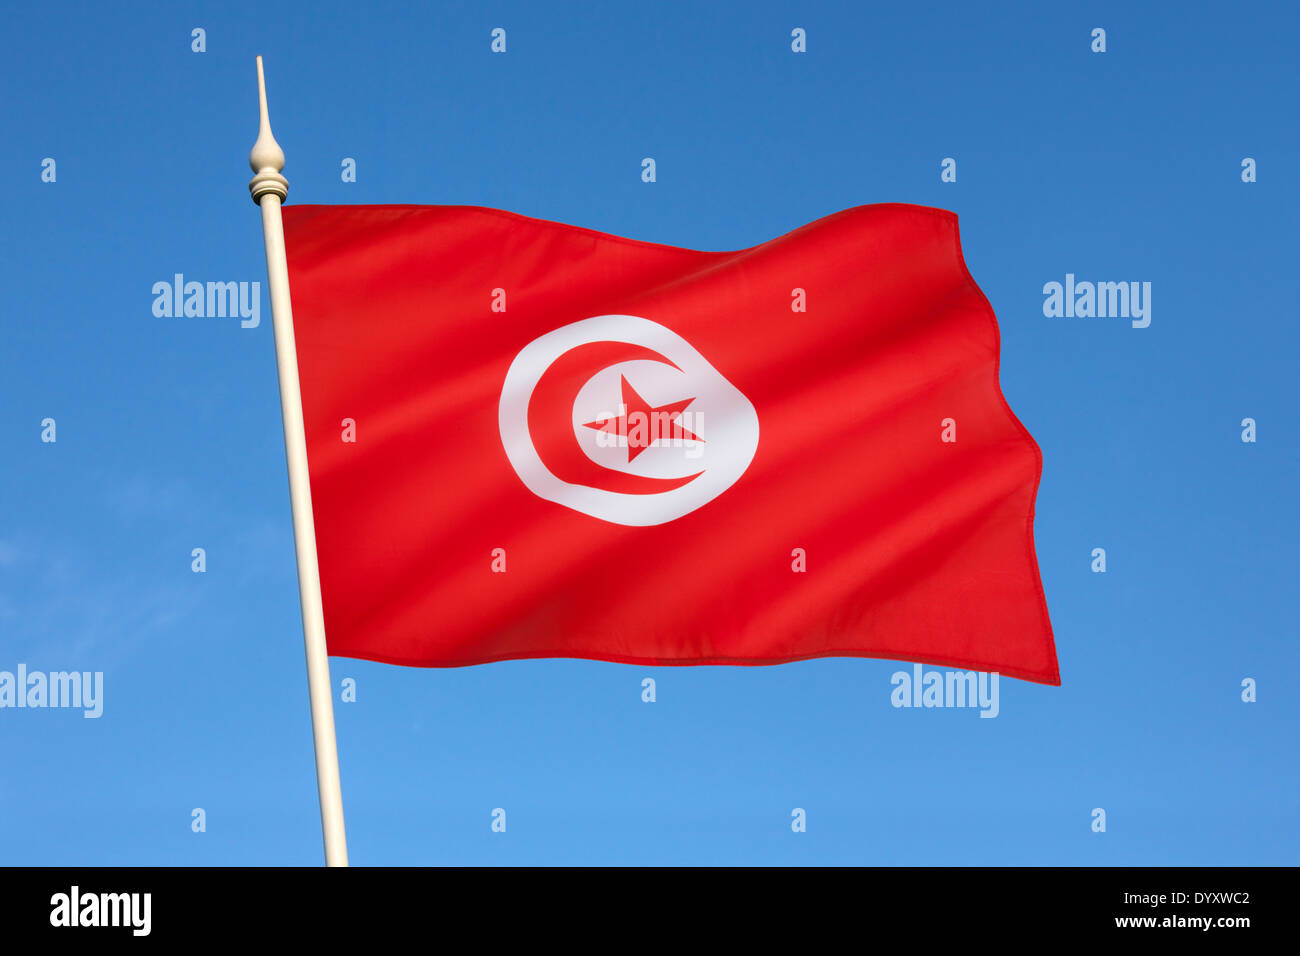 Drapeau de la Tunisie Photo Stock